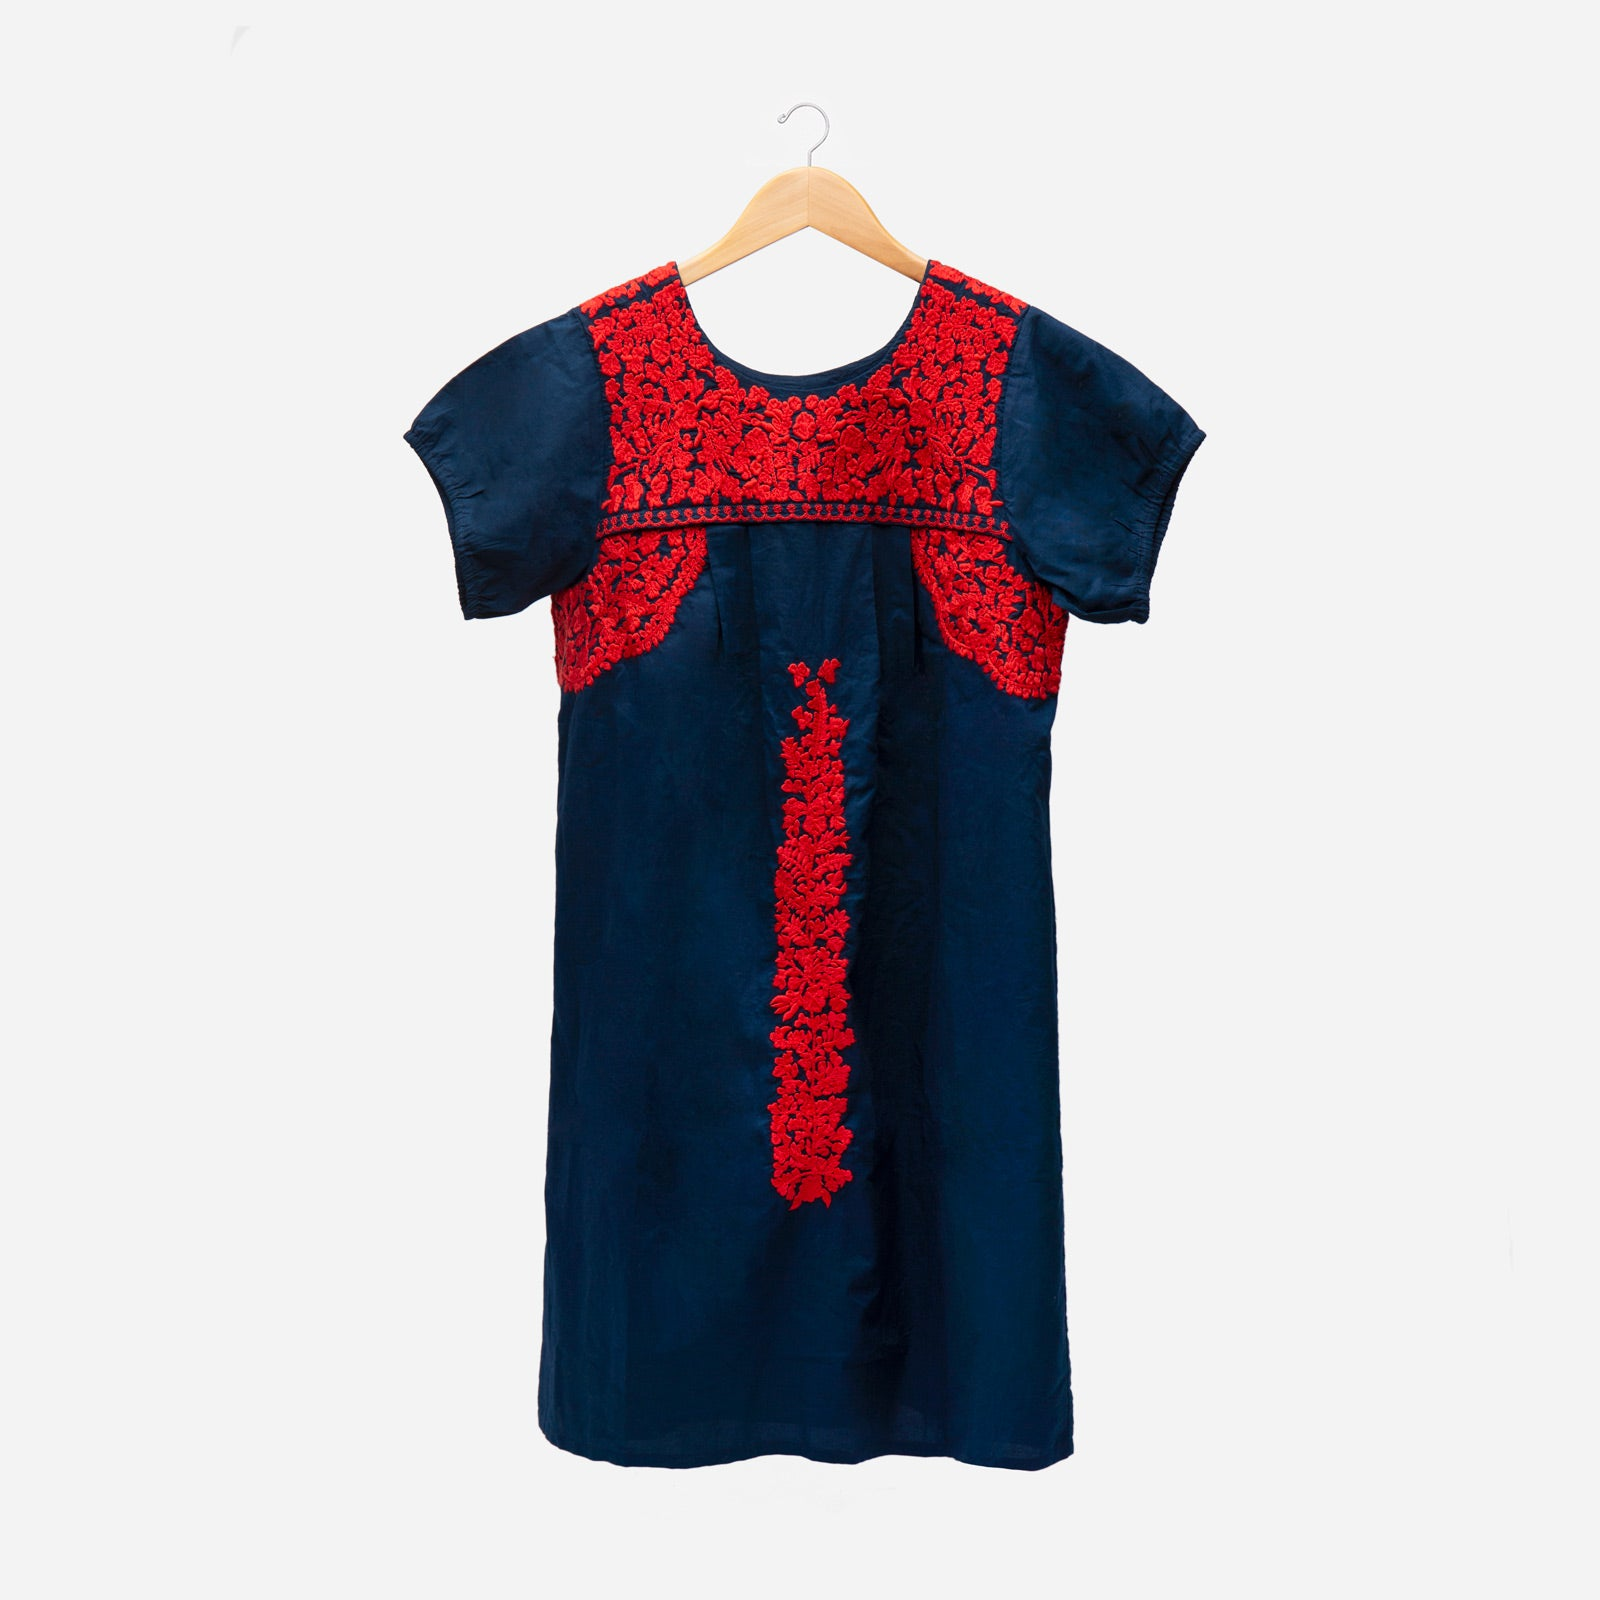 Floral Embroidered Lace Dress Navy Red